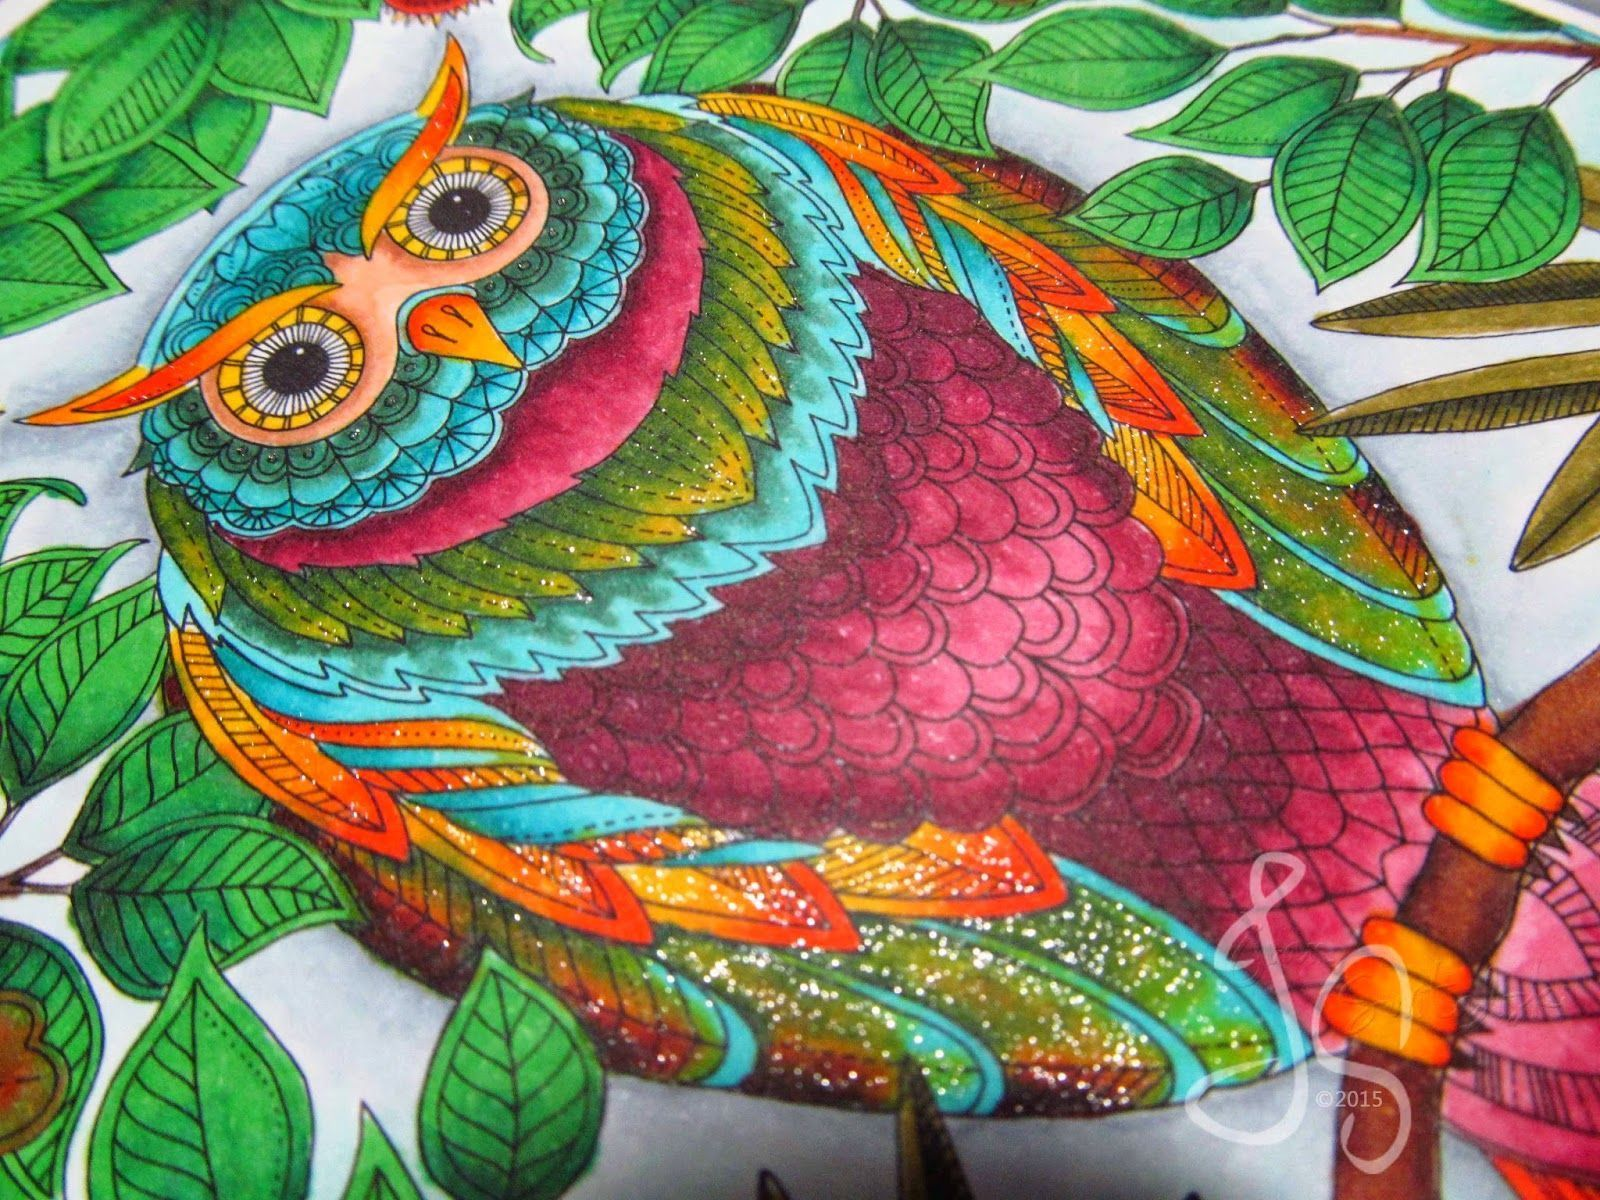 The top 25 Ideas About Finished Coloring Pages for Adults - Best